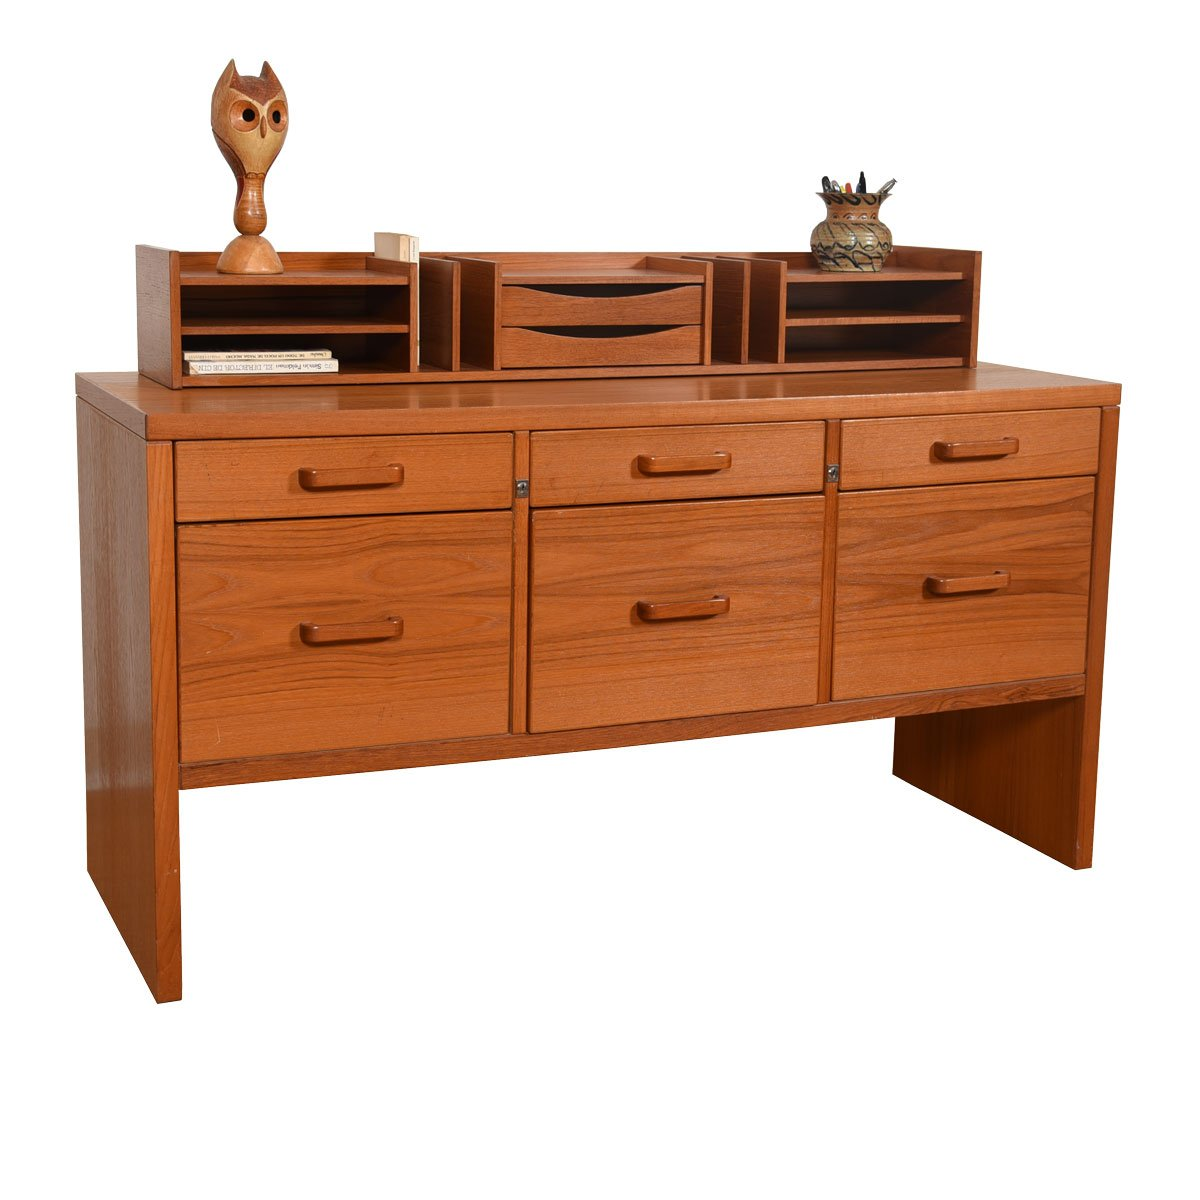 Danish Modern Teak 6 Drawer Locking 'File Dresser' / Room Divider